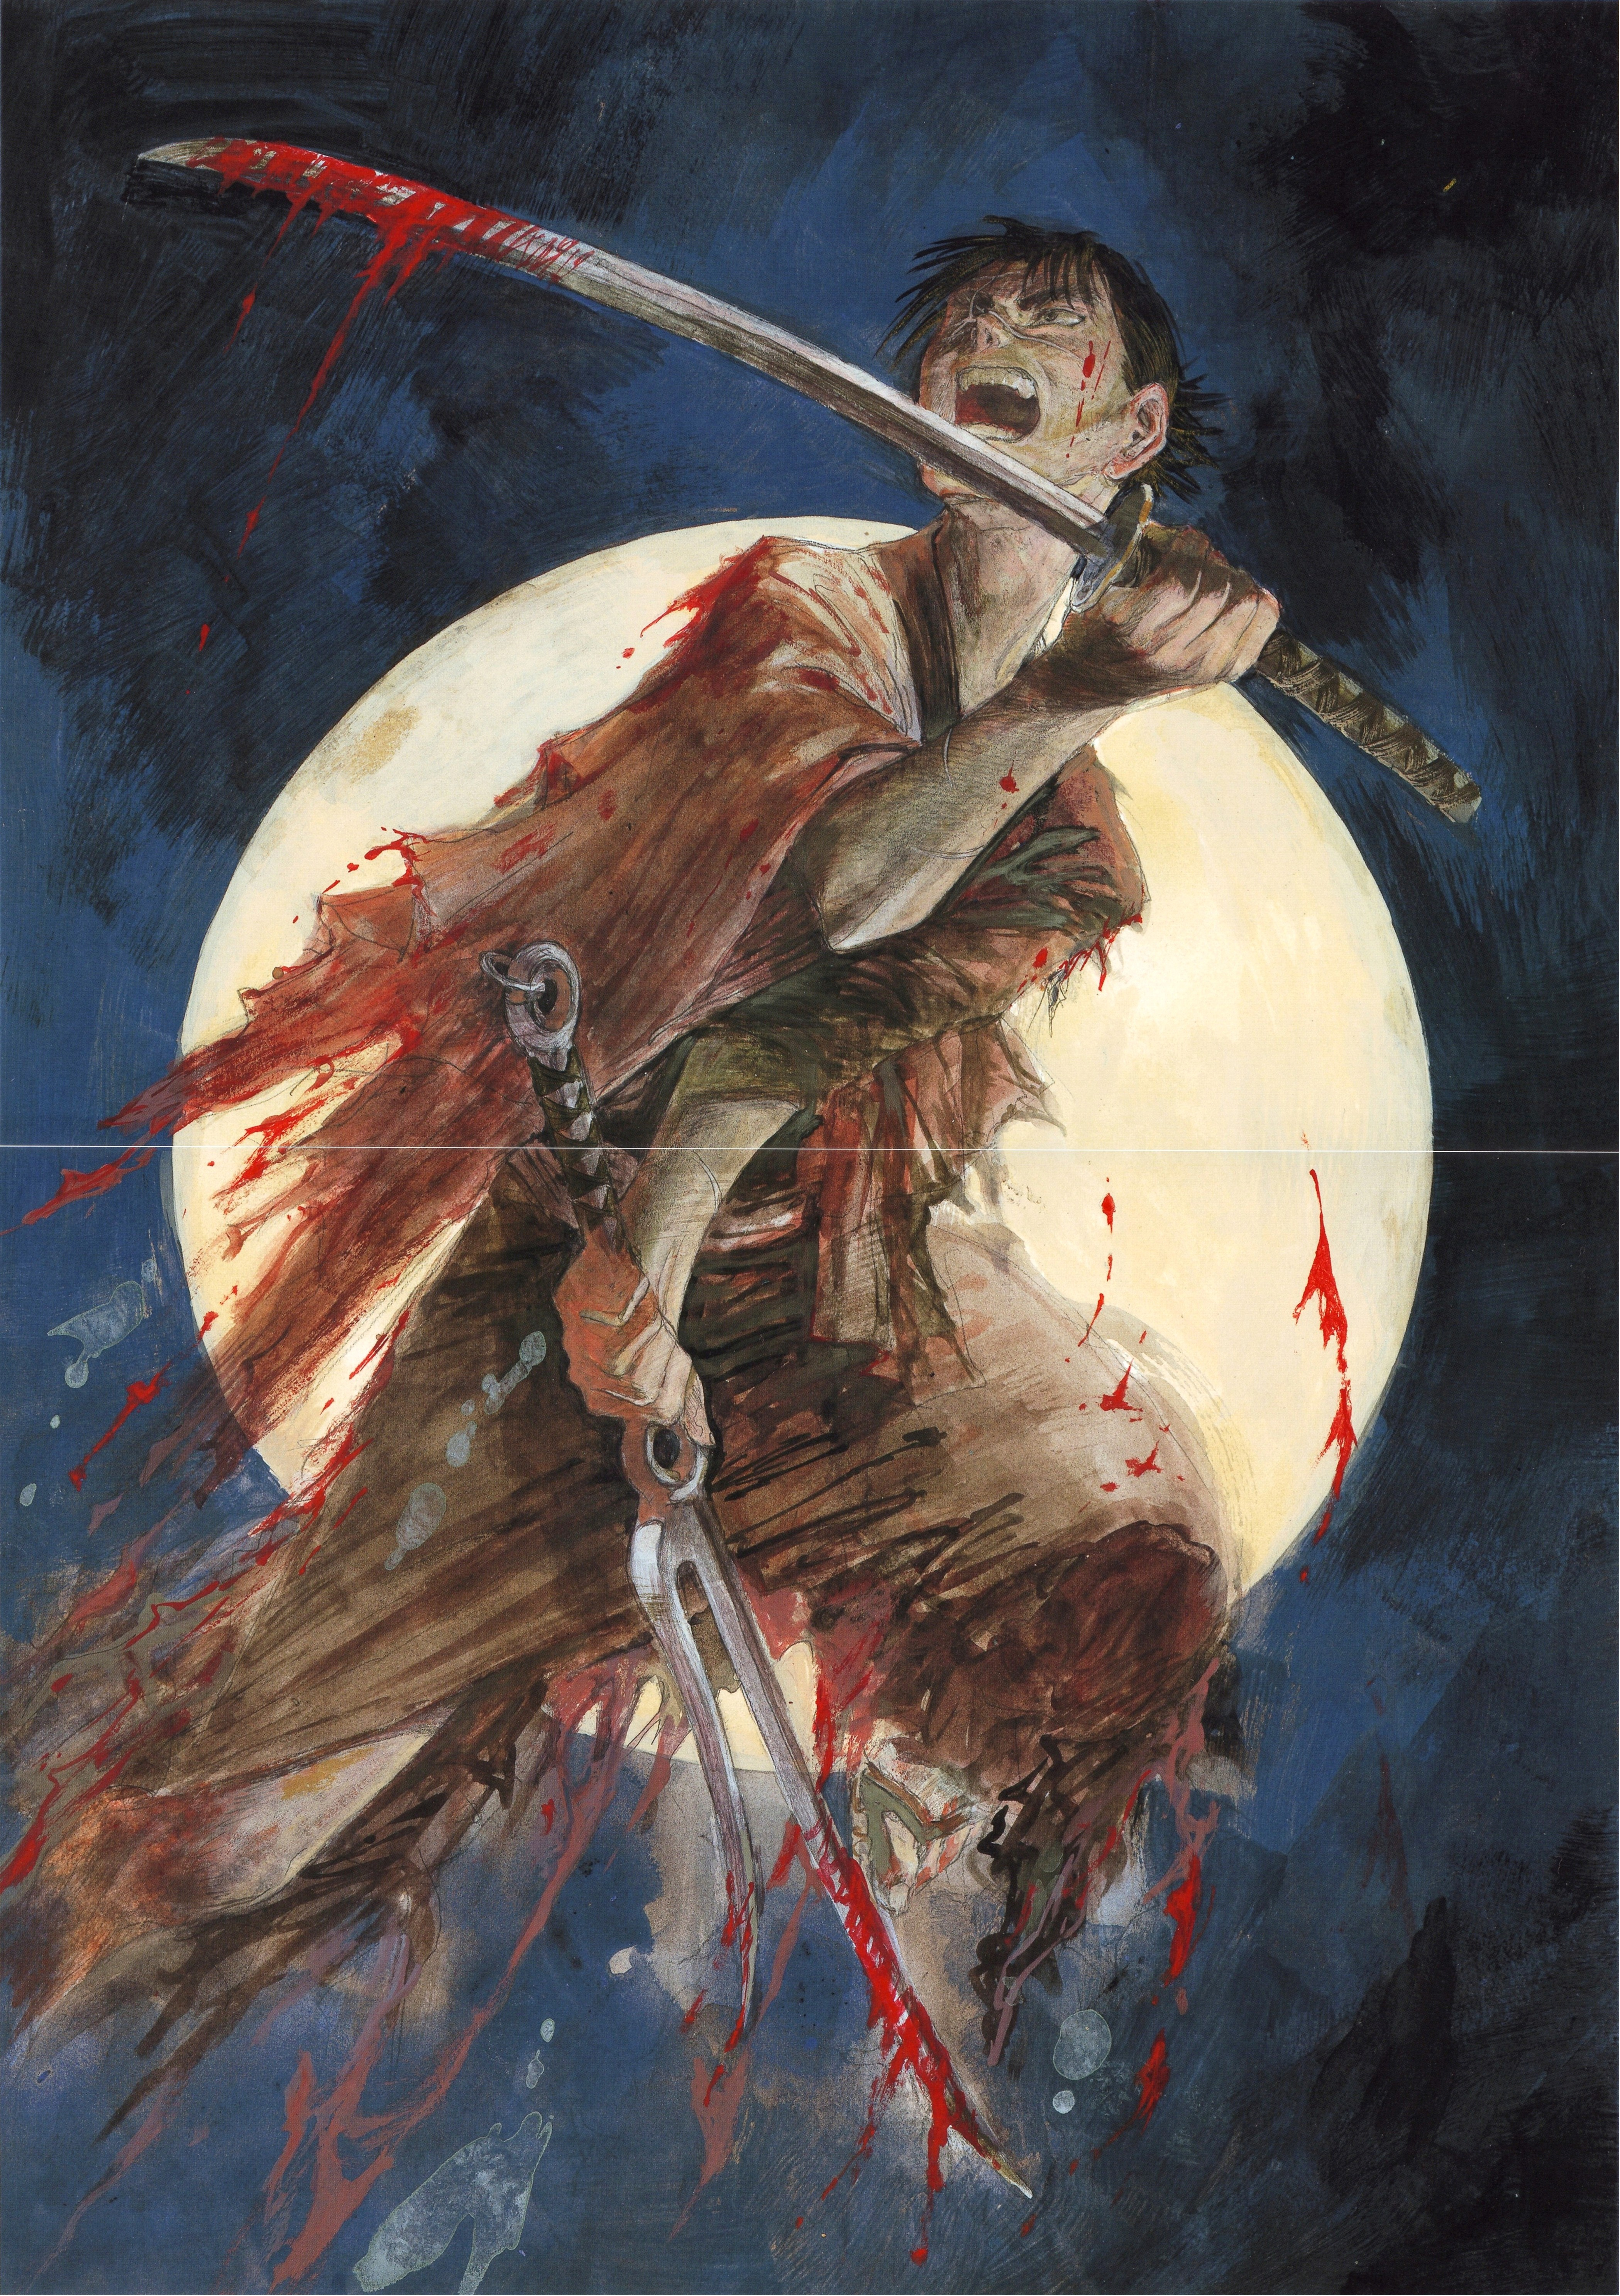 Anime Wallpaper Site Manji Character Blade Of The Immortal Image 1278415